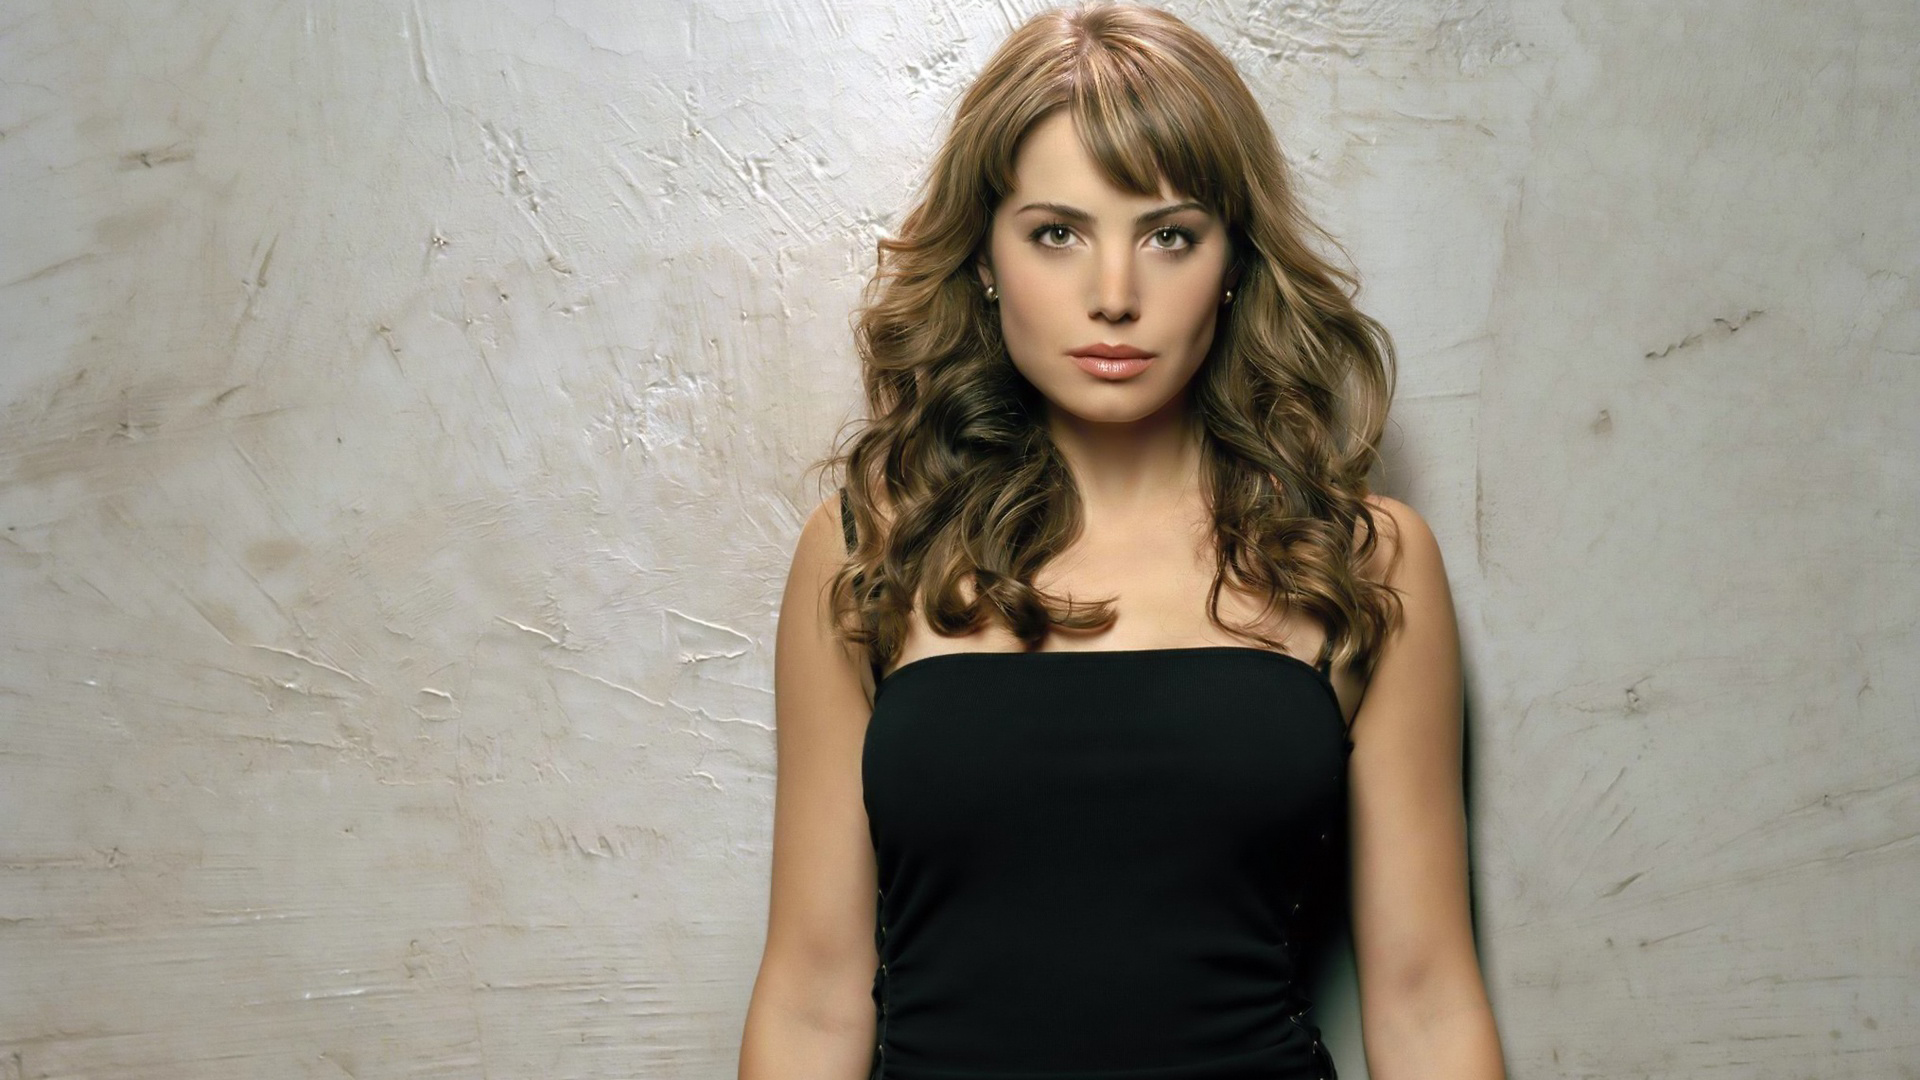 erica durance computer wallpaper - photo #10